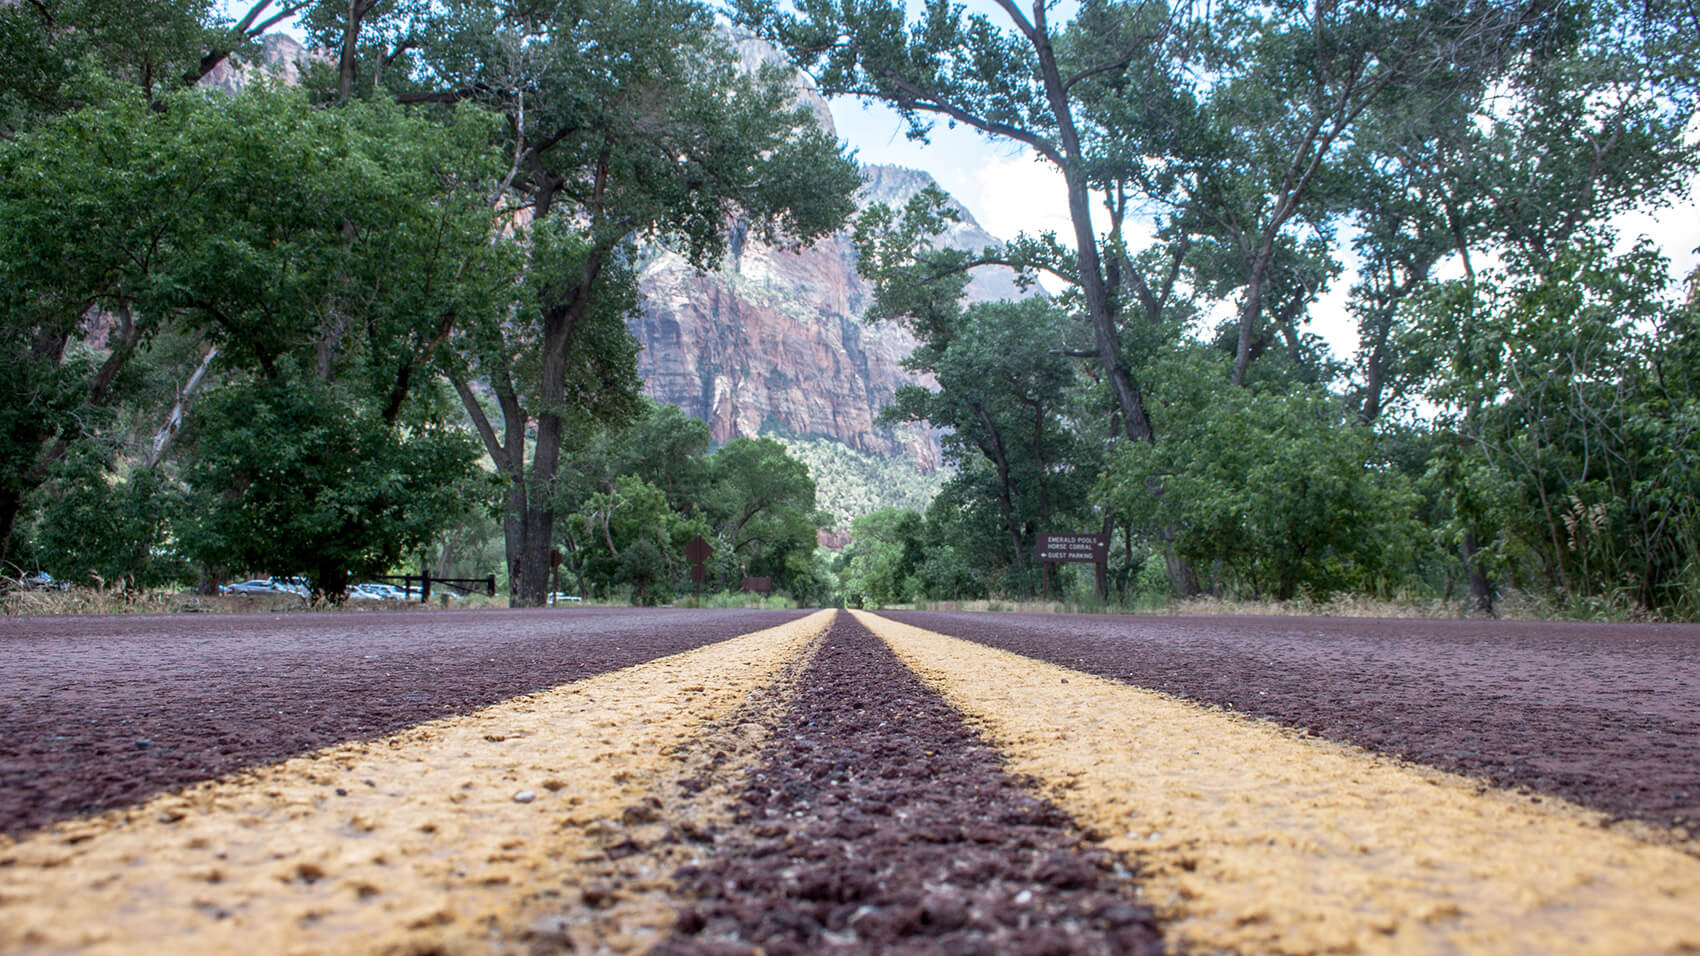 Road lines in Zion National Park